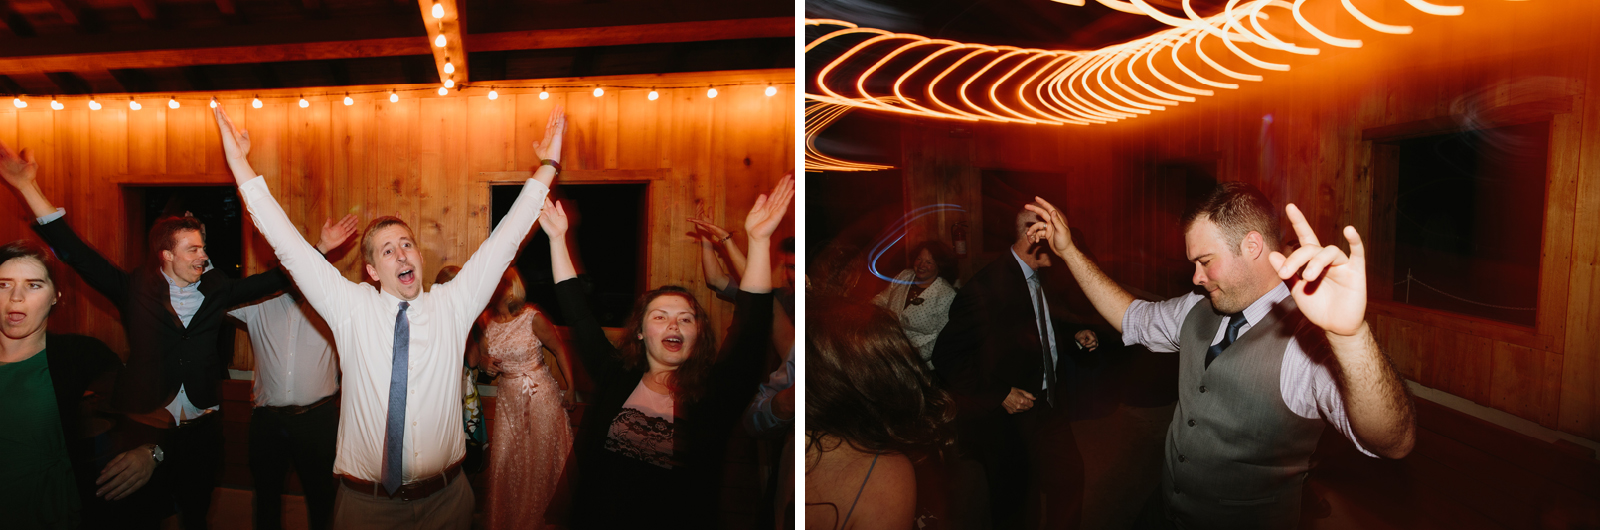 Wedding guests dance during wedding reception at Bridal Veil Lakes in Corbett, Oregon